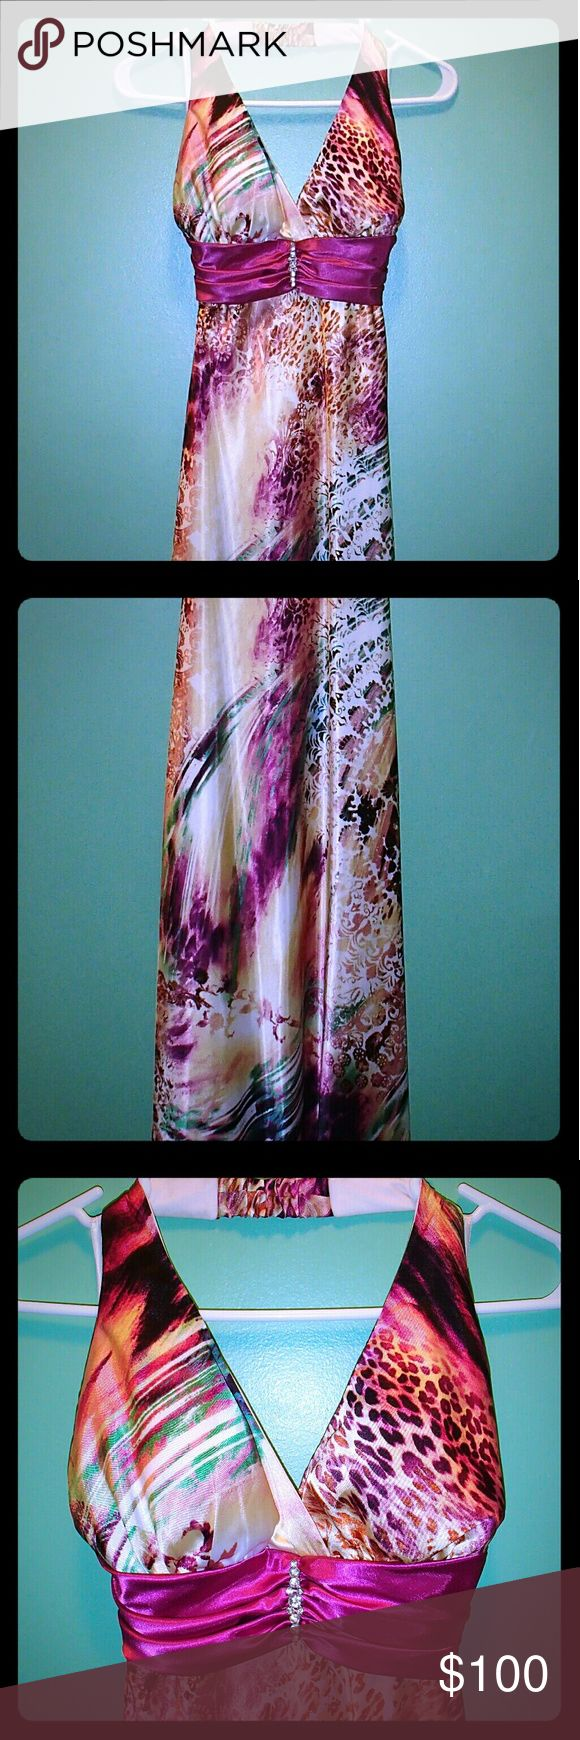 "Gorgeous long halter formal dress Excellent condition!! Only worn once! Smoke free home!  Beautiful animal print & multi-colored design with a diamond accent in the front. Halter style, ties in back & has a 5.5"" zip closure in the back. Fully lined. This dress would be perfect for any formal occasion!  Length = 4' 6-7"" Train of 5"" Taboo Dresses Maxi"